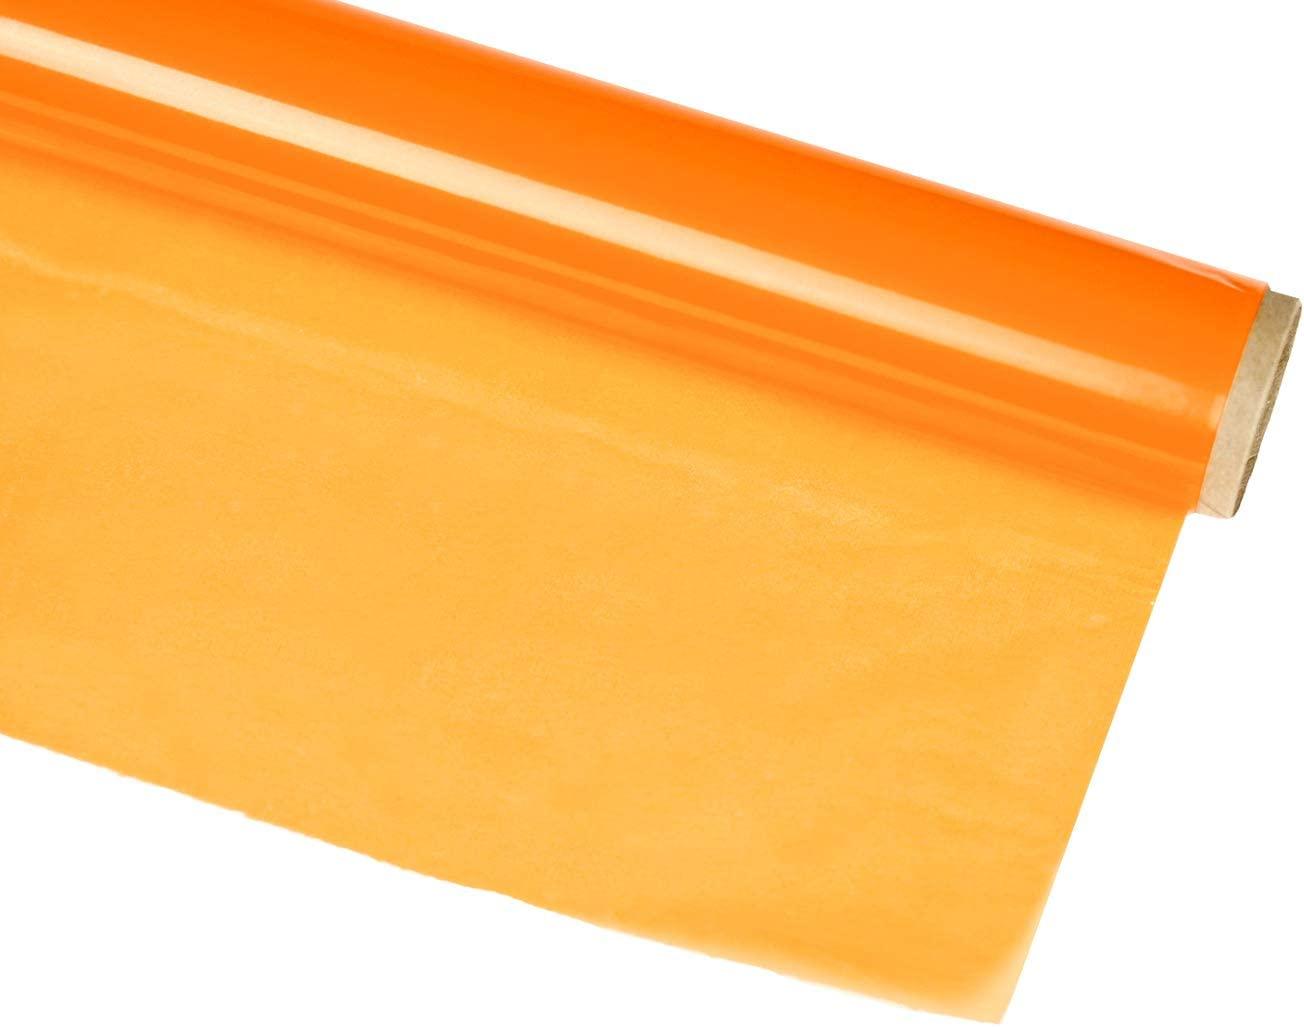 Hygloss Products Cellophane Roll – Cellophane Wrap for Crafts, Gifts, and Baskets 20 Inch x 5 Feet, Orange: Home & Kitchen